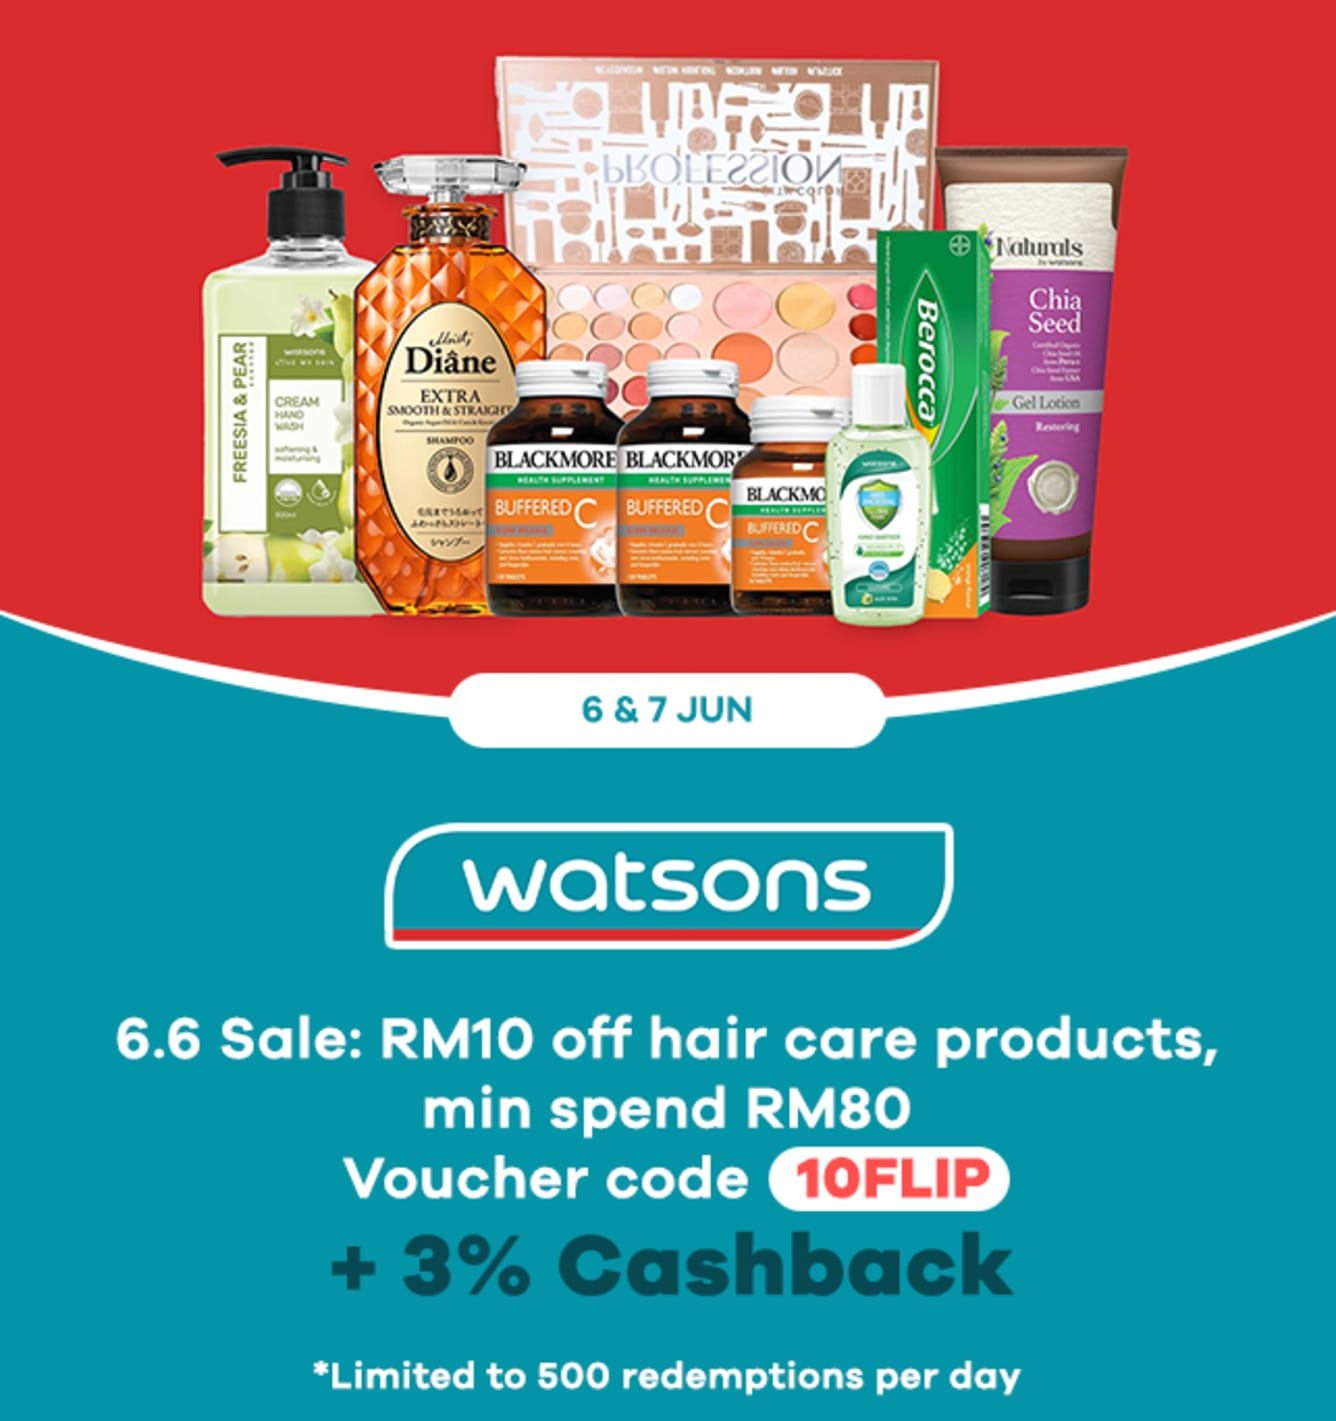 Watsons Weekly Upsized Cashback